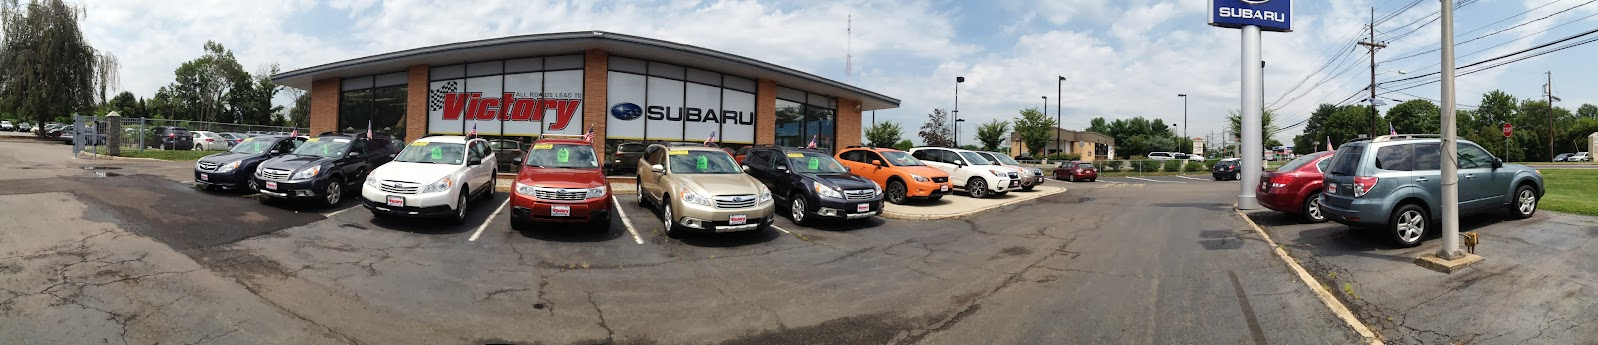 new used subaru dealership serving freehold victory subaru. Black Bedroom Furniture Sets. Home Design Ideas